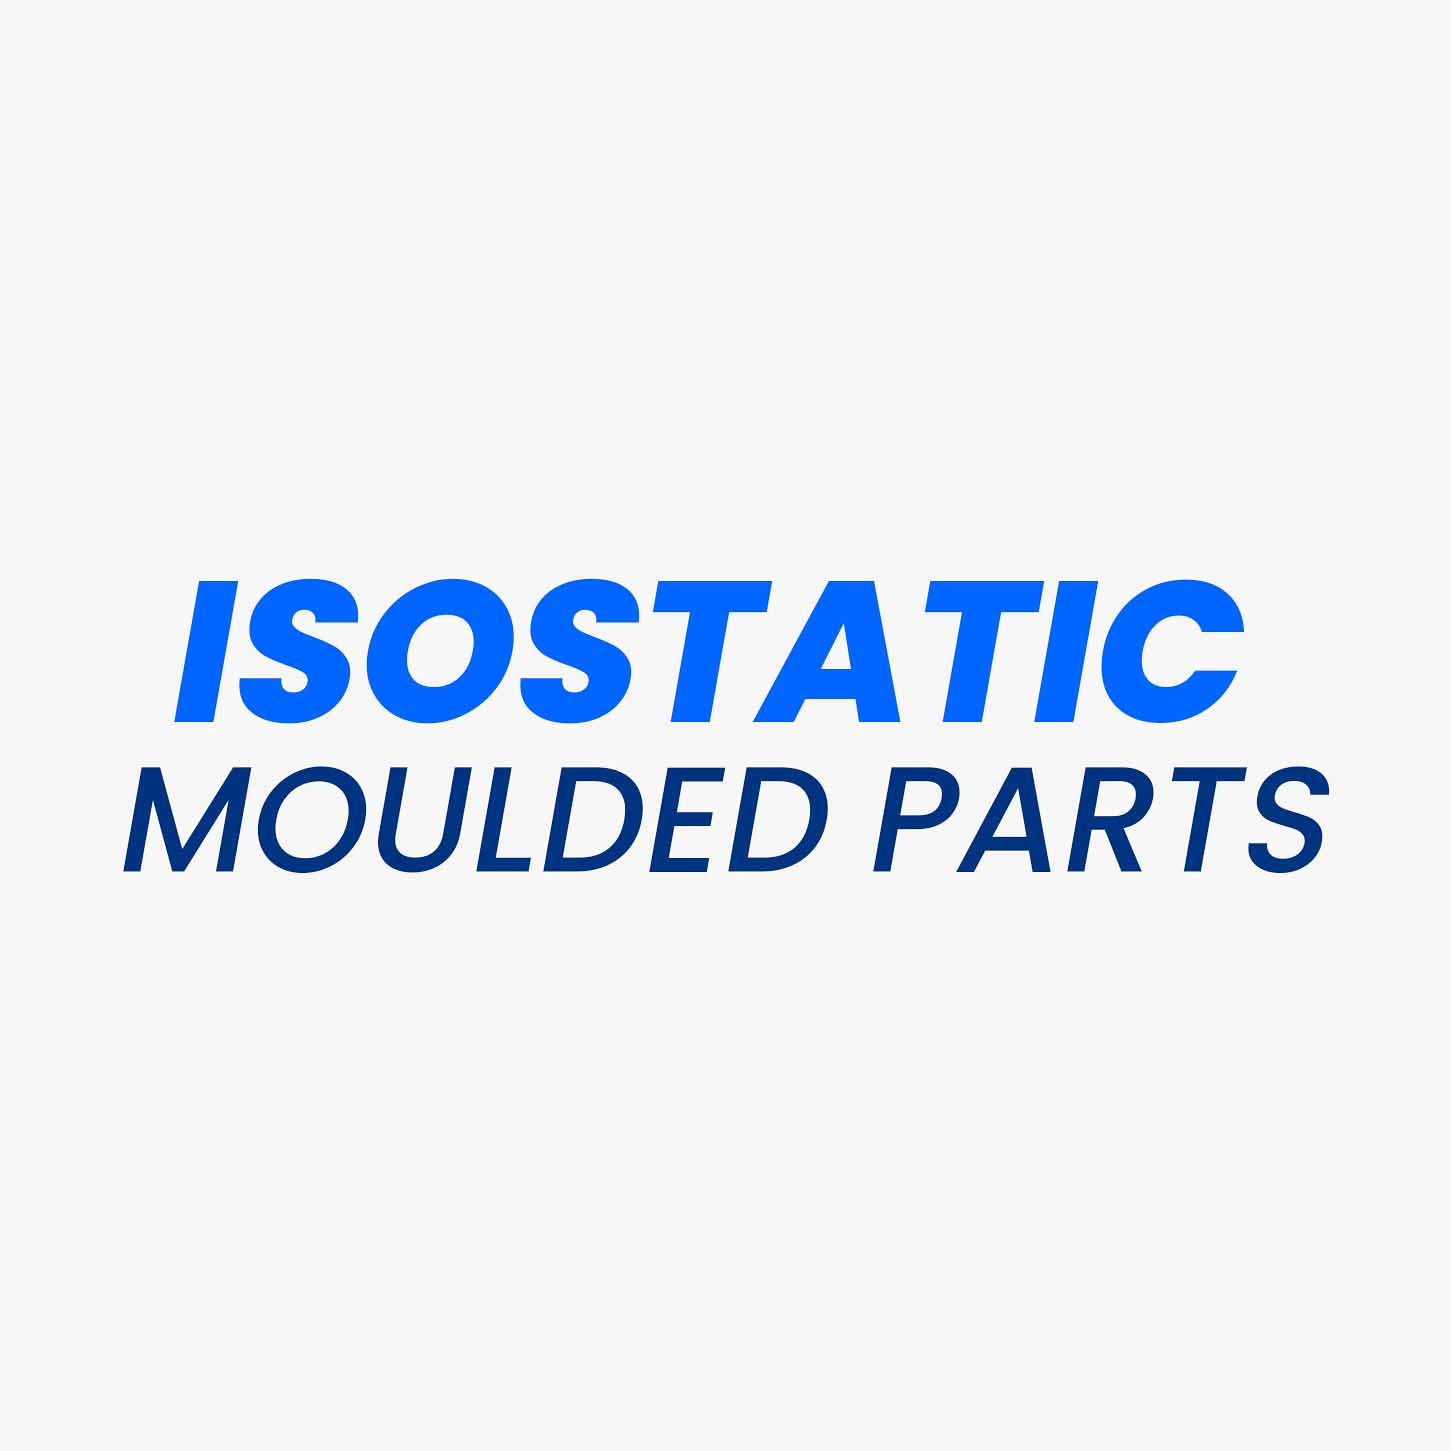 Isostatic moulding is a manufacturing method where the pressure is evenly applied in all directions on the moulding material in granular form throughout the cycle time, which is suitable to produce complex part shapes in a broad size range having uniform physical properties This method differs from Compression moulding which applies pressure only in a single direction. In contrast to the compression moulded and extruded parts, materials that are isostatically moulded have better consistent material properties.